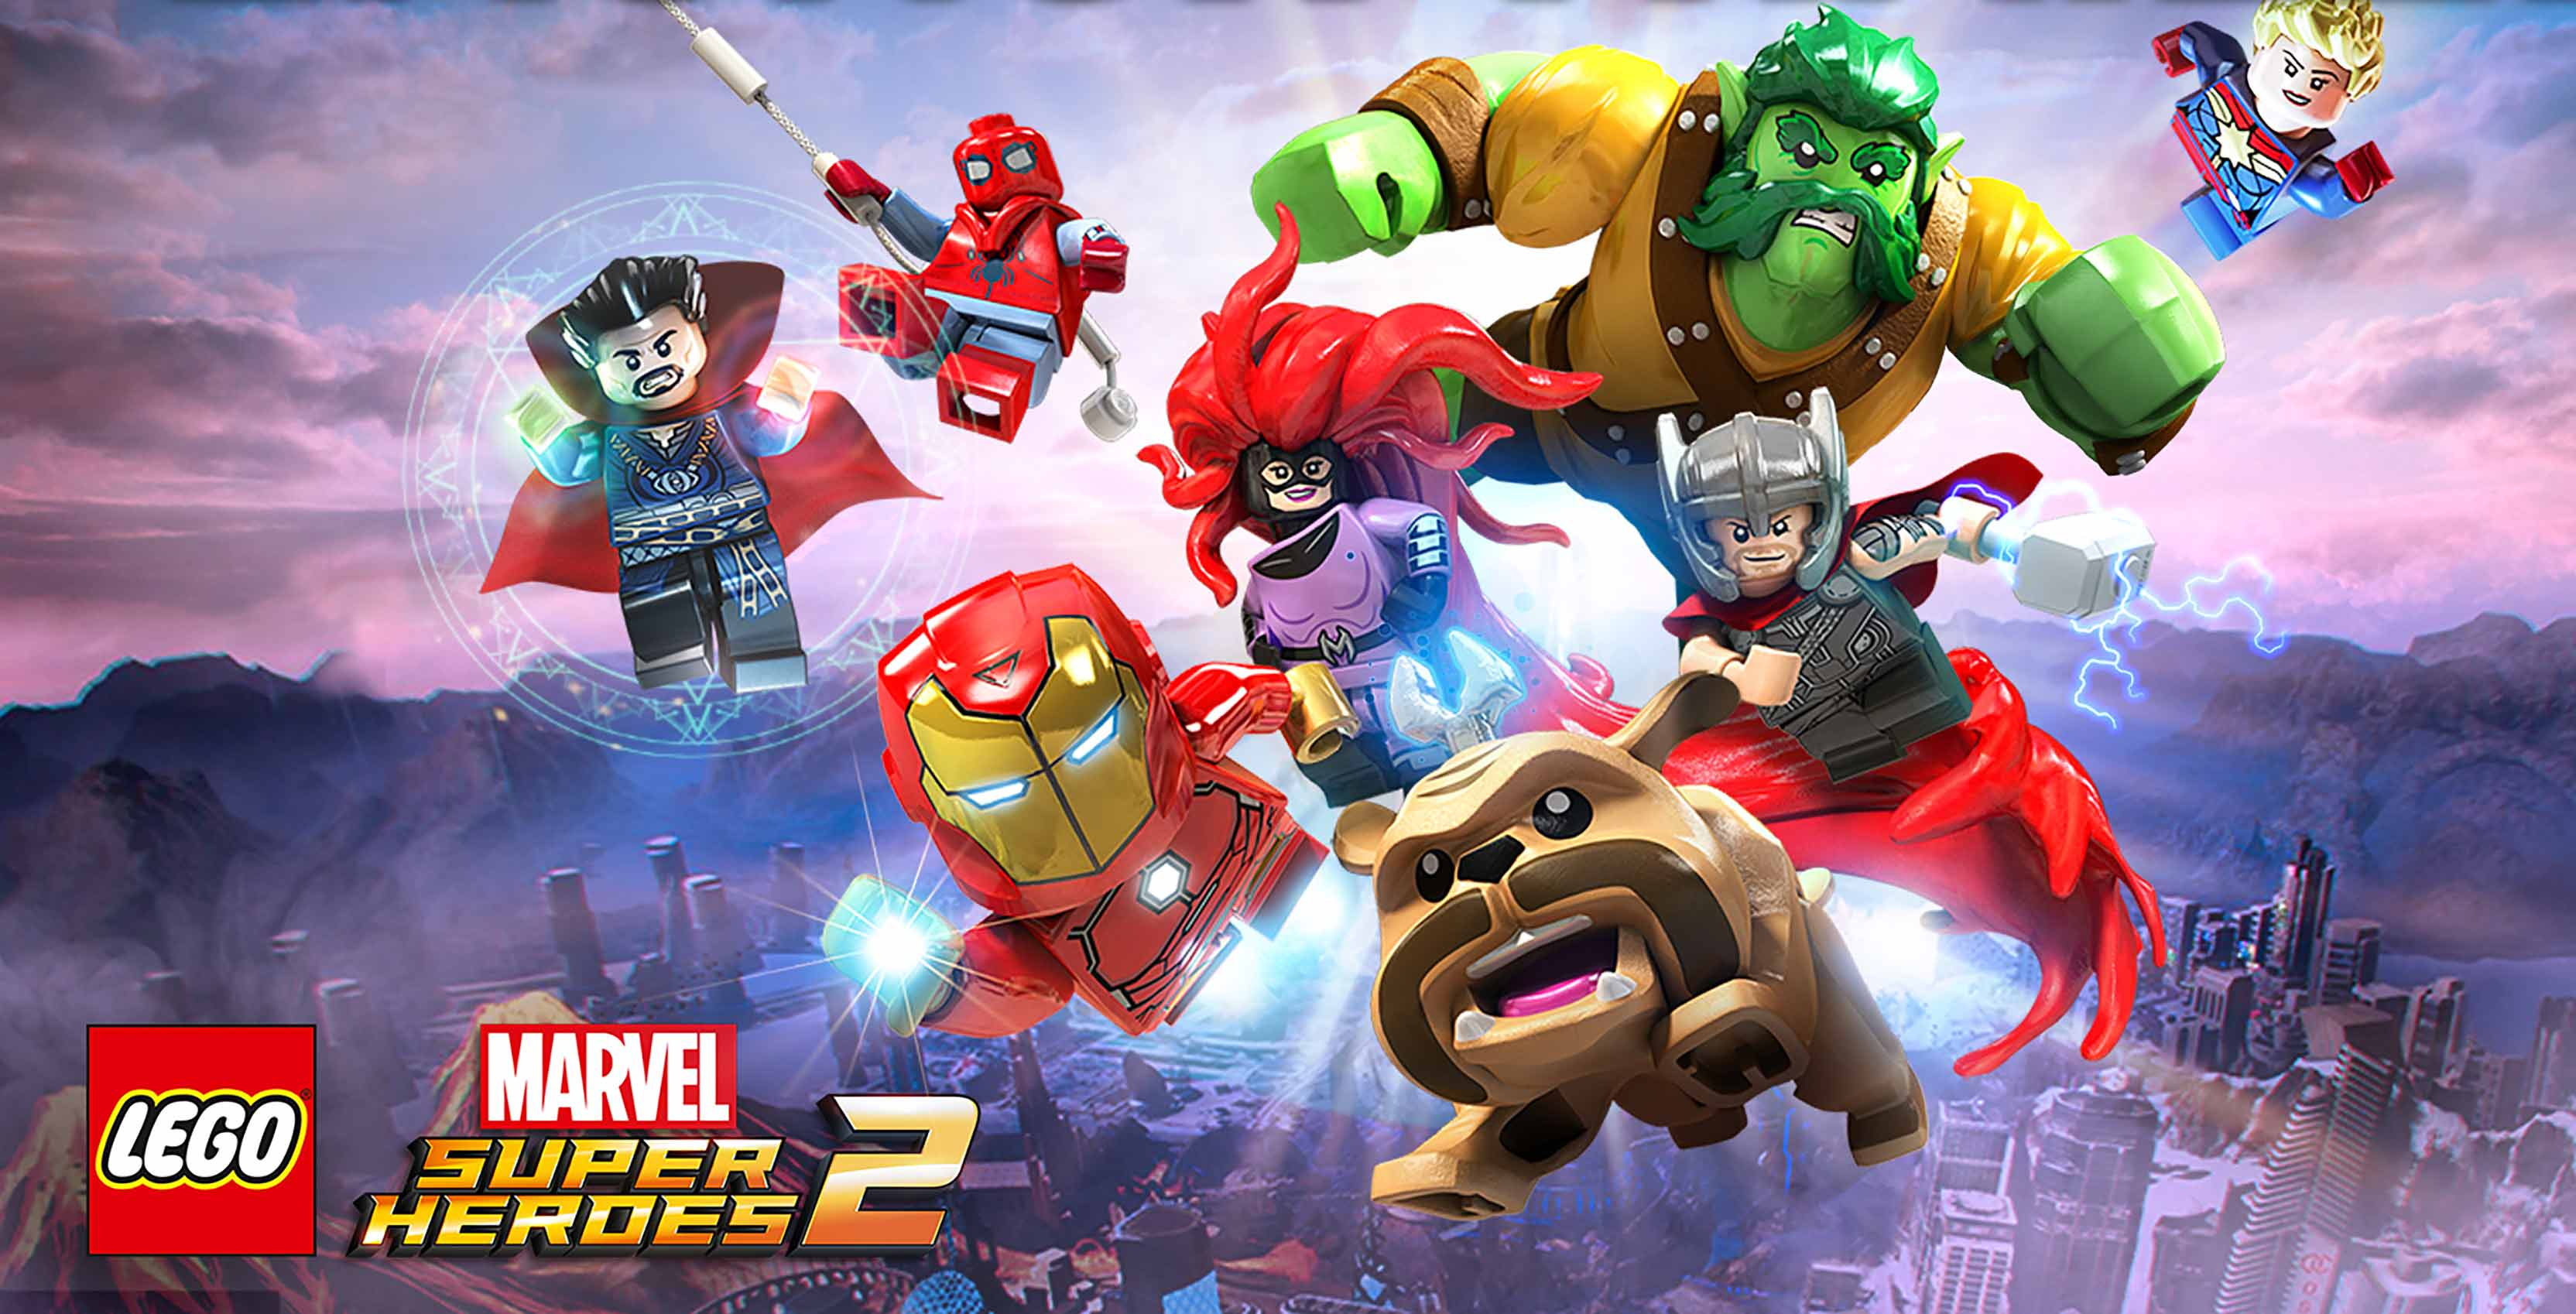 lego marvel superheroes 2 hooked on a feeling this week in gaming